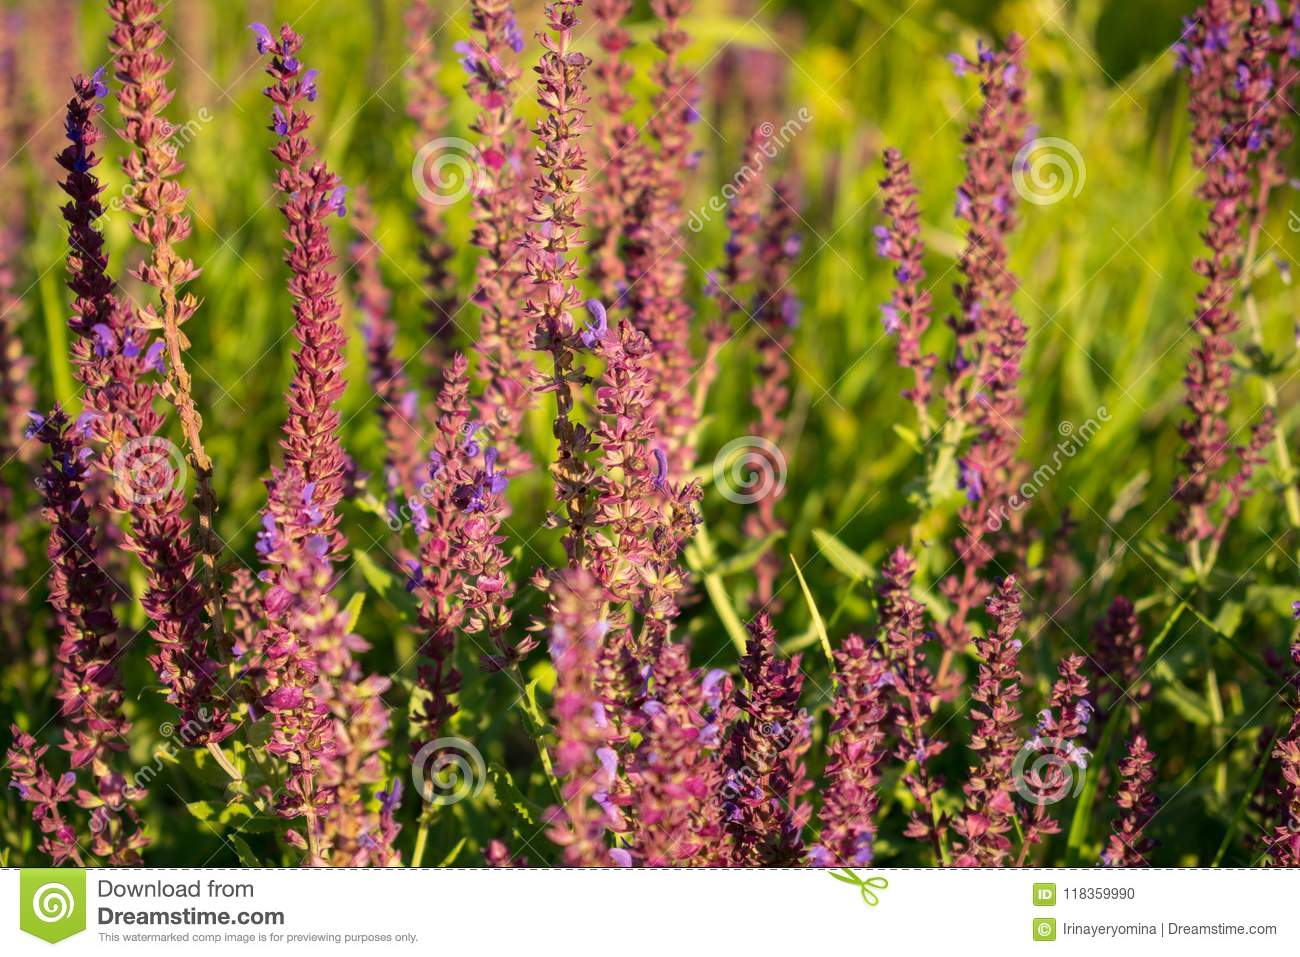 Blooming garden sage (common sage, culinary sage), Salvia officinalis. Field of fresh purple flowers. Pink summer meadow sage